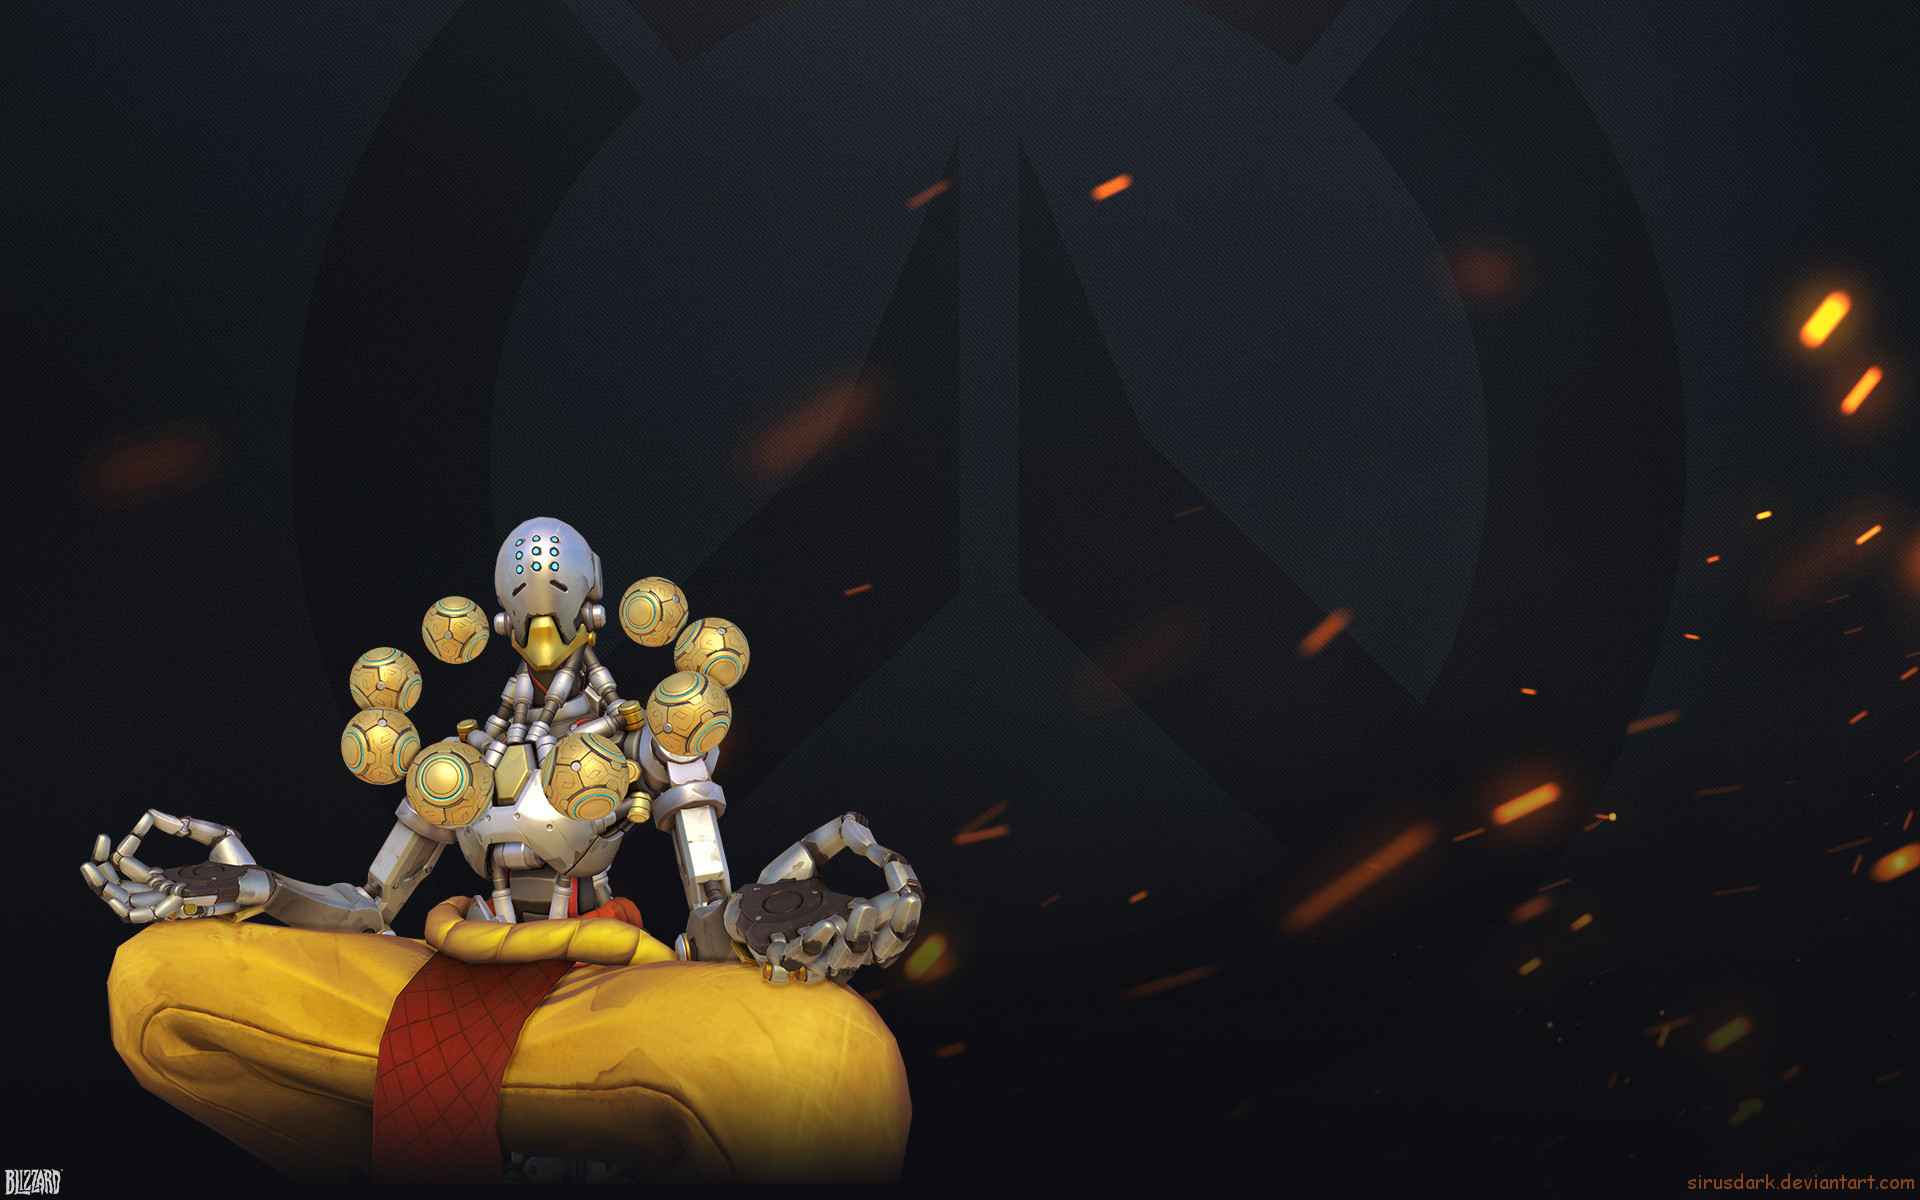 1920x1200 Video Game - Overwatch Zenyatta (Overwatch) Wallpaper